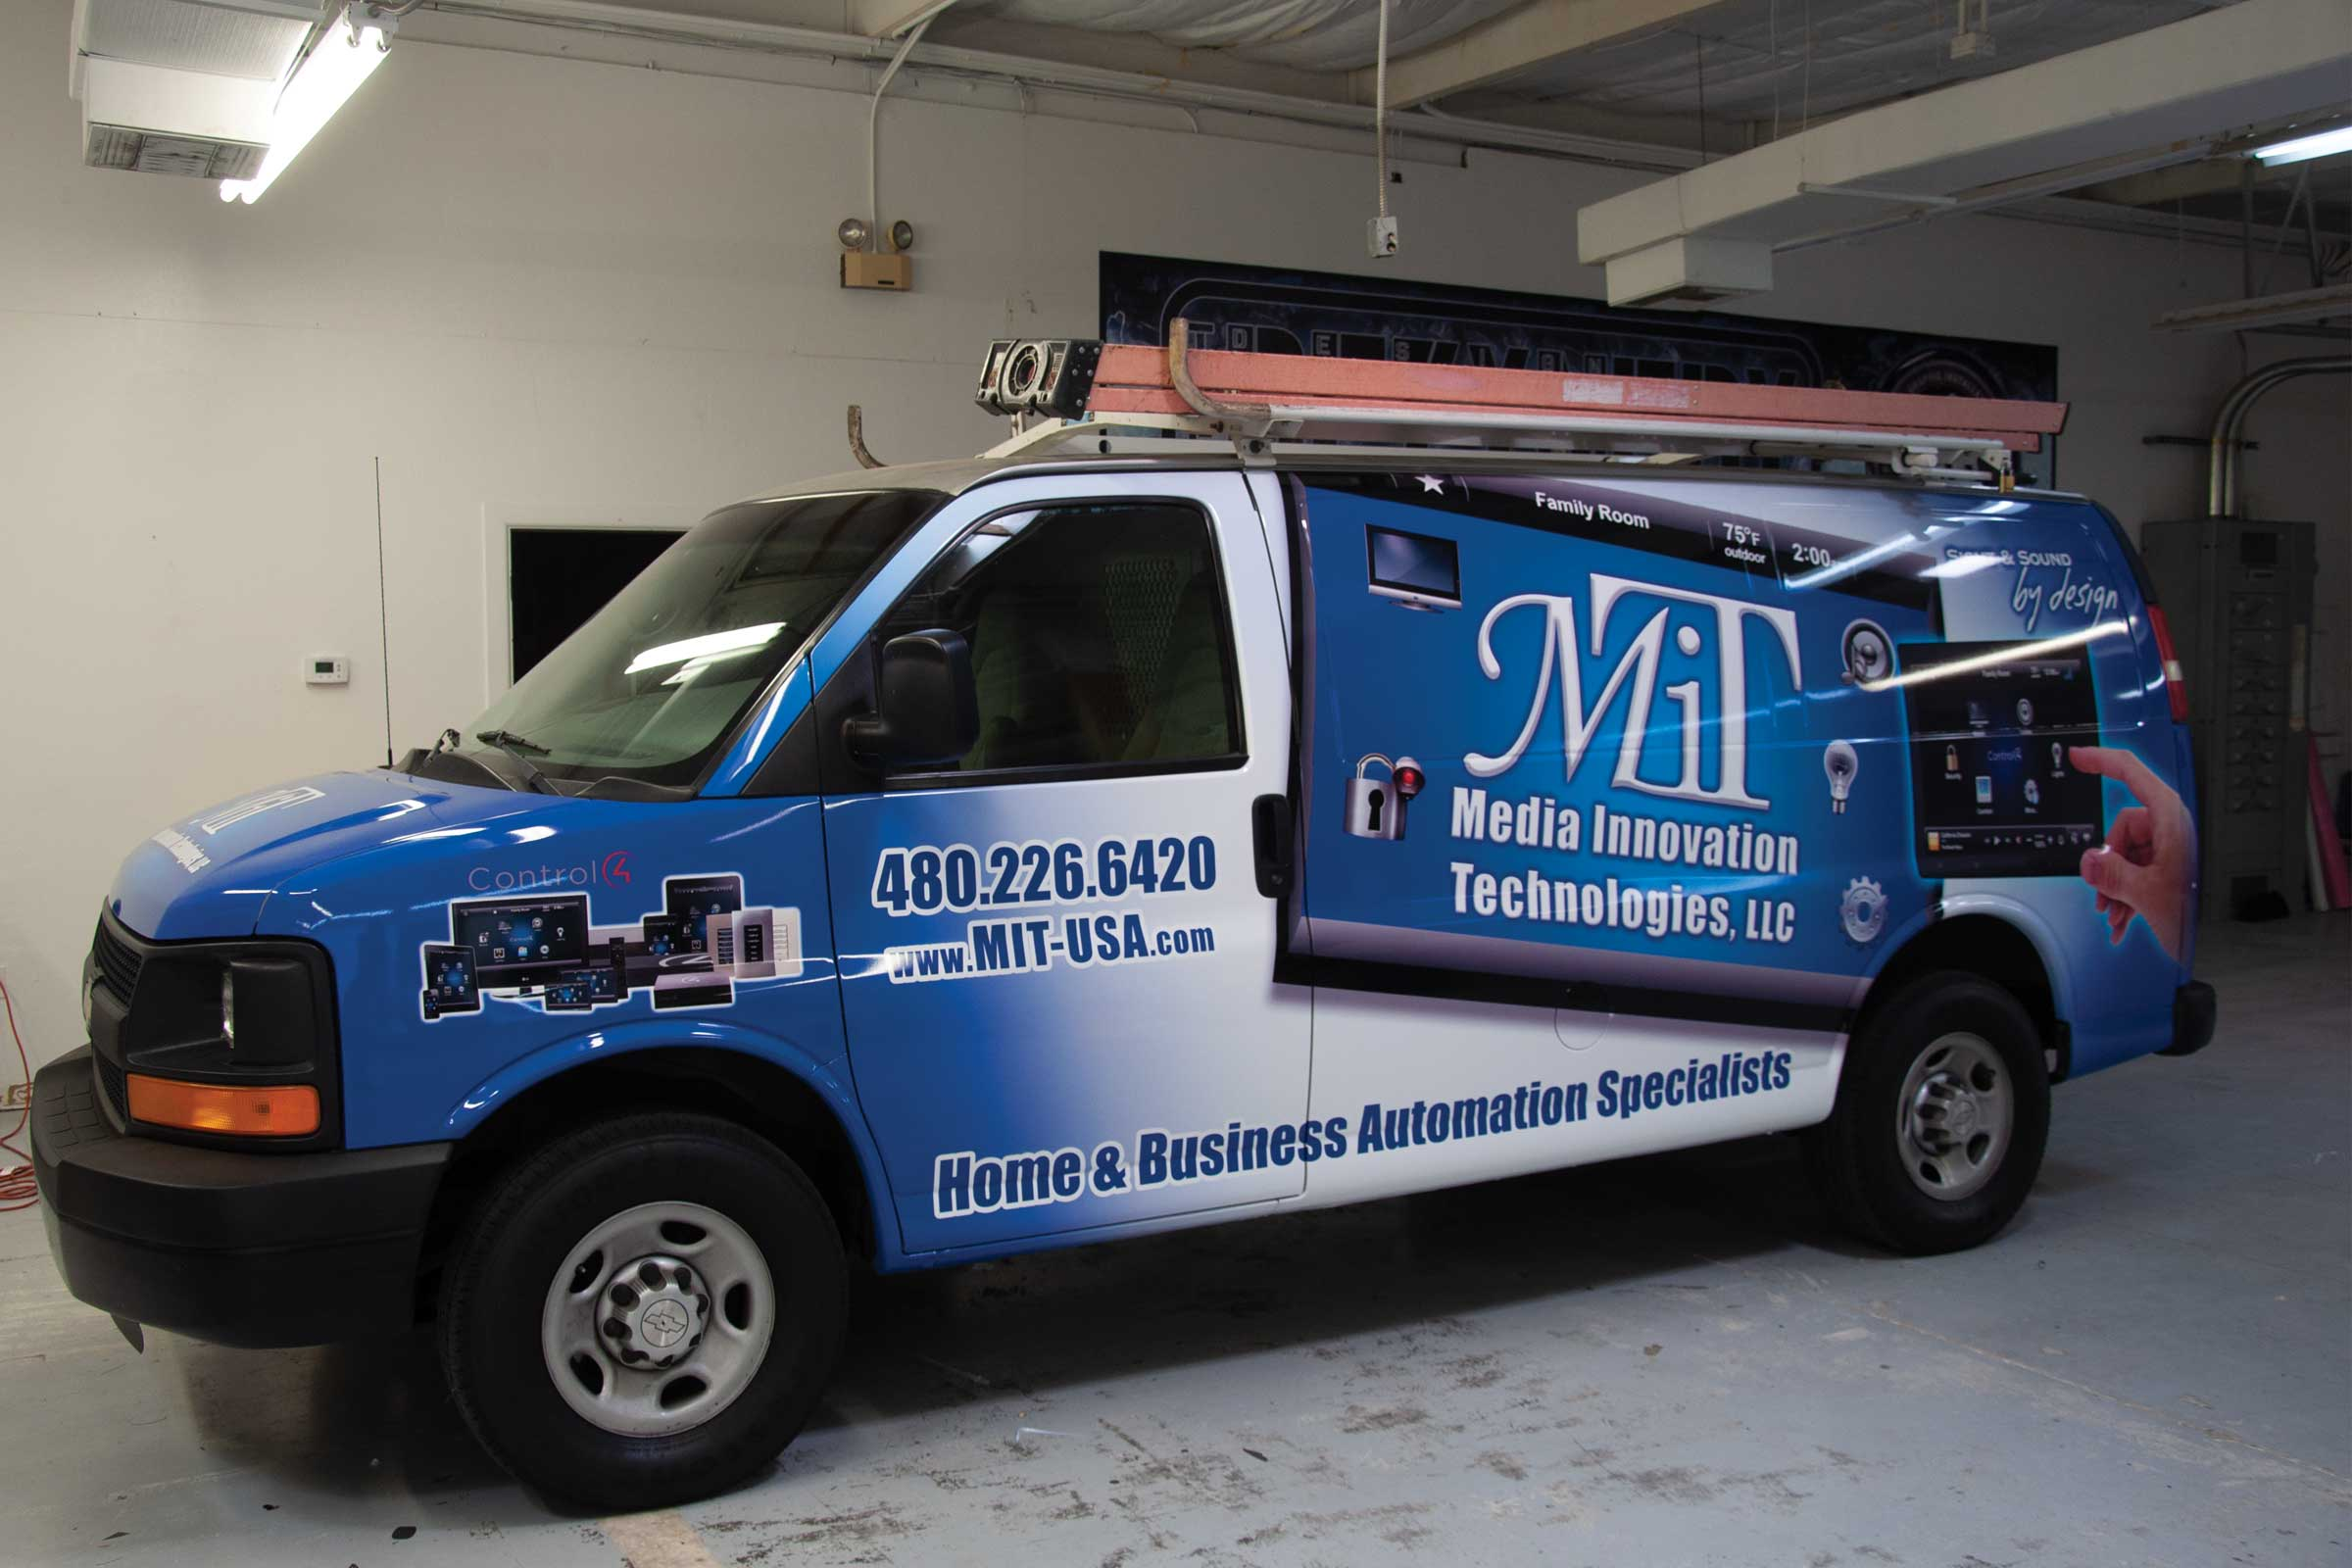 Full Vehicle Wrap for MIT.